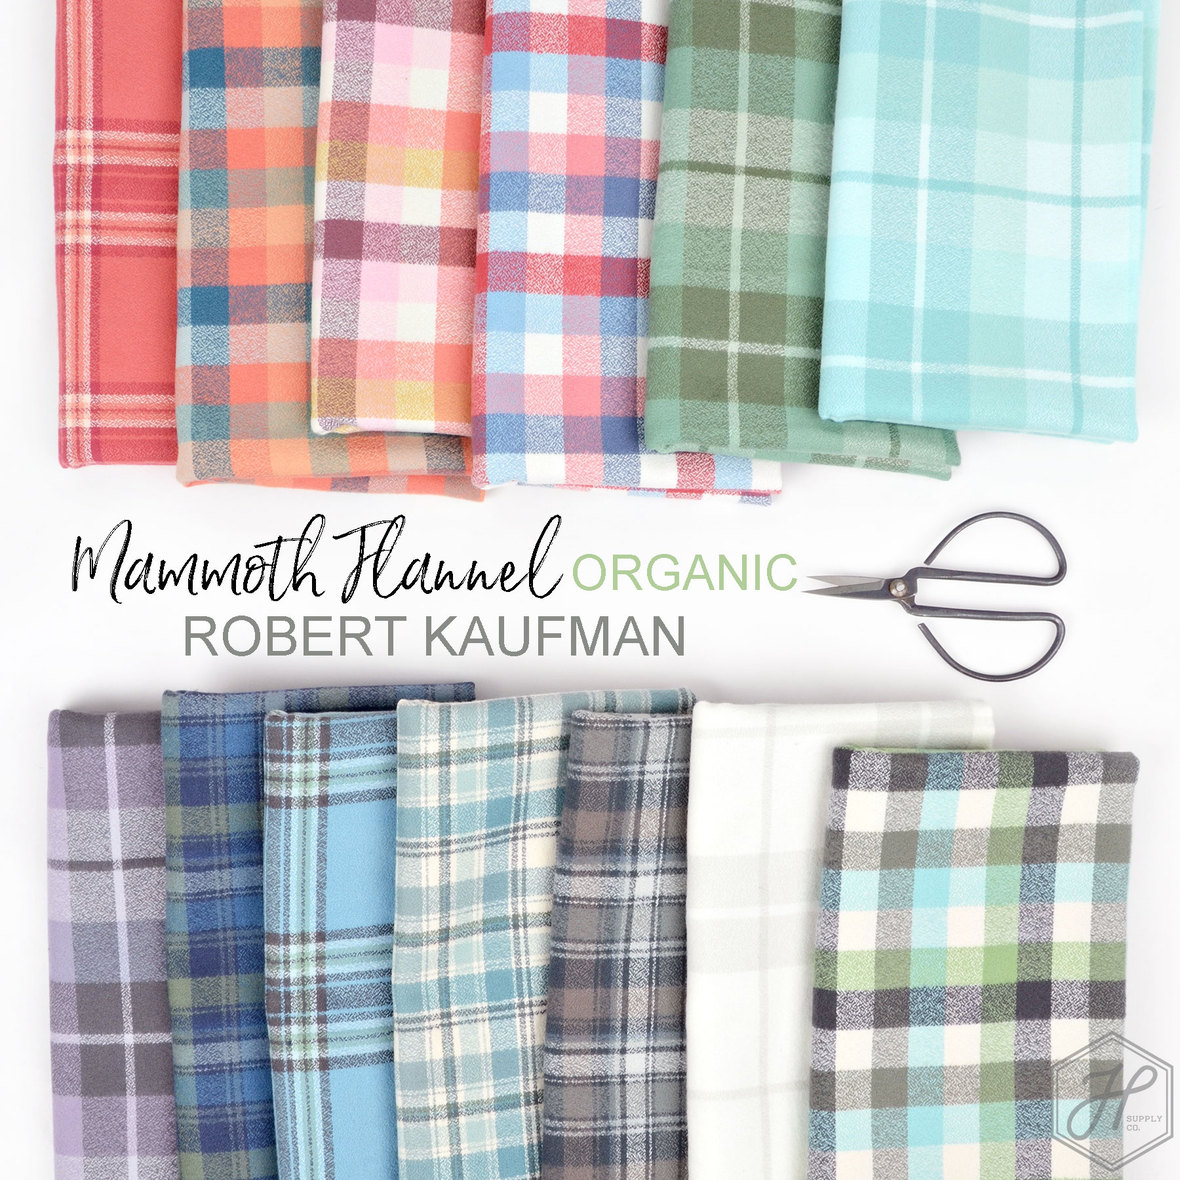 Mammoth-Flannel-Organic-from-Robert-Kaufman-at-Hawthorne-Supply-Co